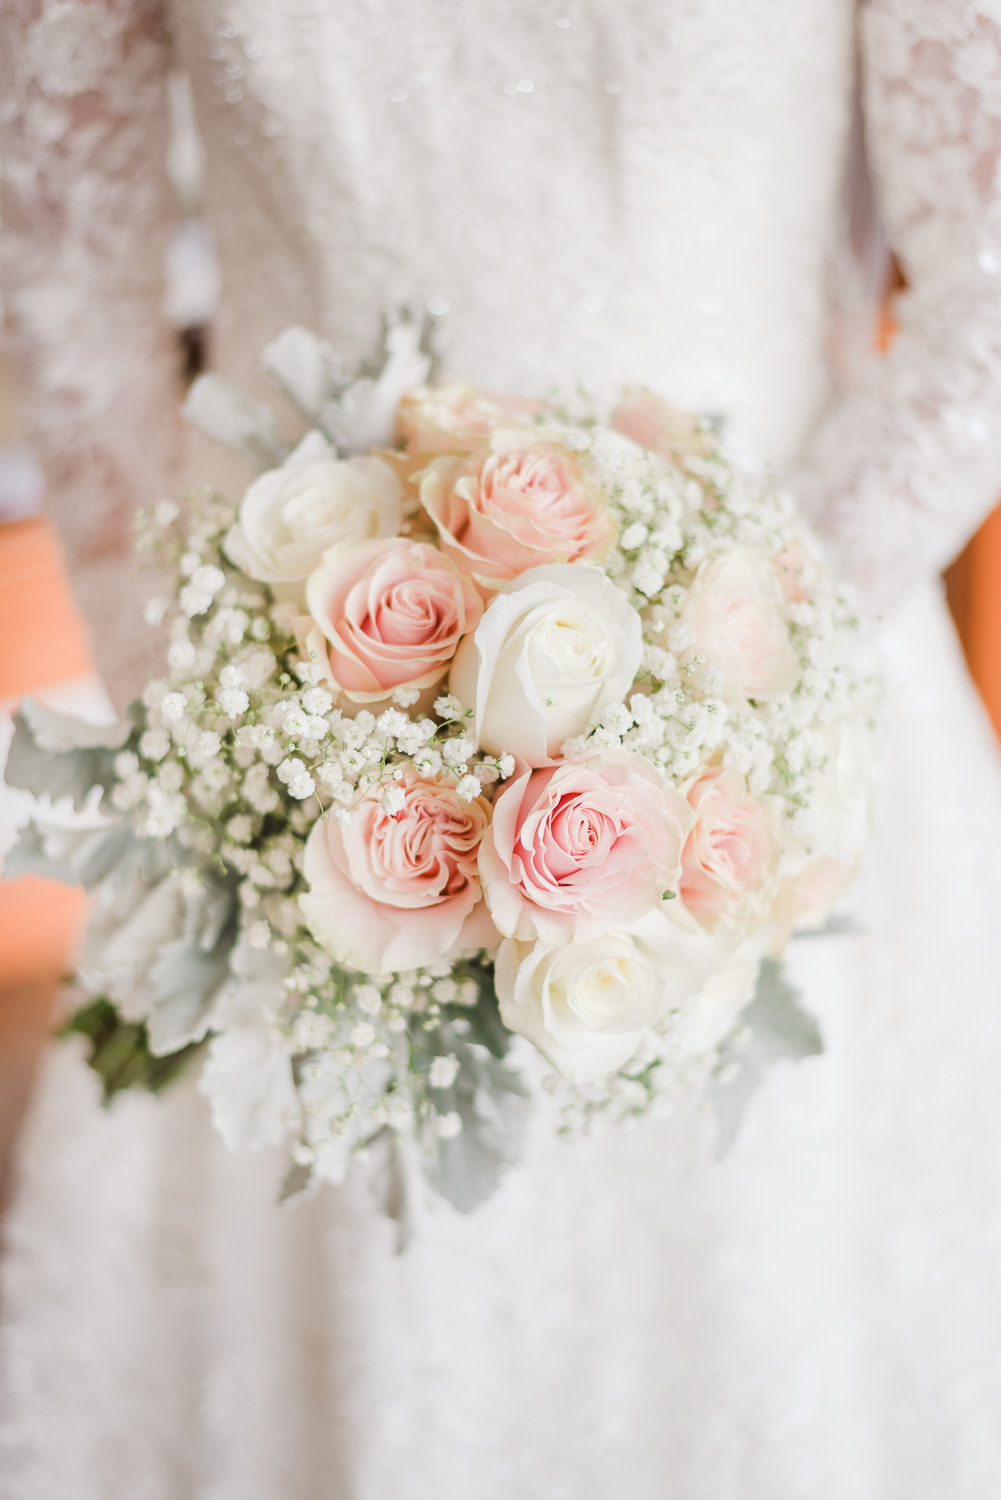 bride's wedding bouquet with pink and white roses, baby's breath and lamb's ear. In Sevierville TN